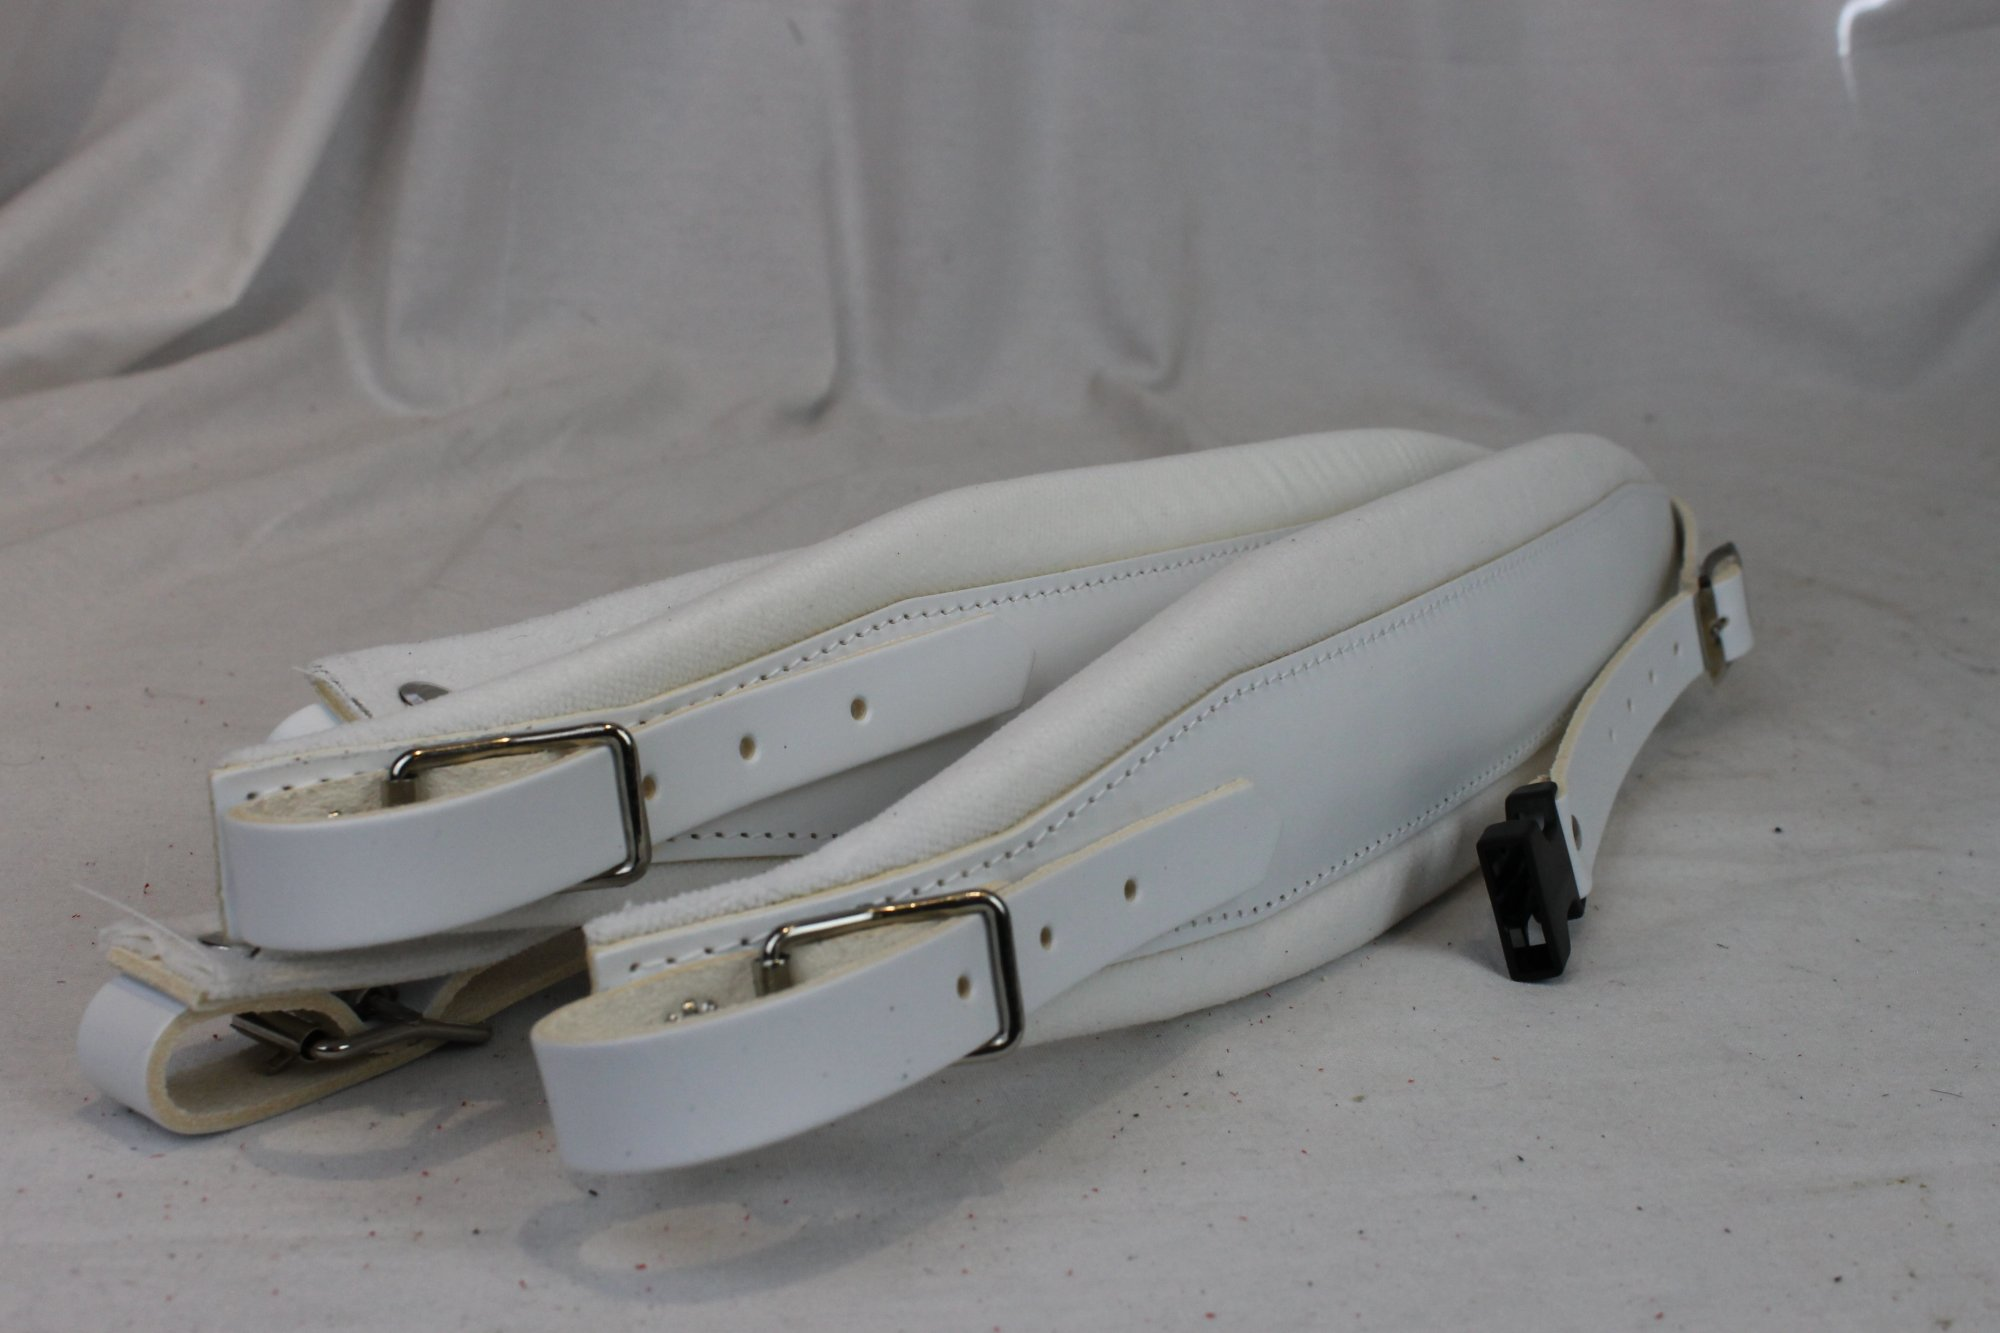 New White Leather Velour Fuselli Accordion Shoulder Straps Width (8cm / 3.1in) Length (85~105cm / 33.5~41.3in)